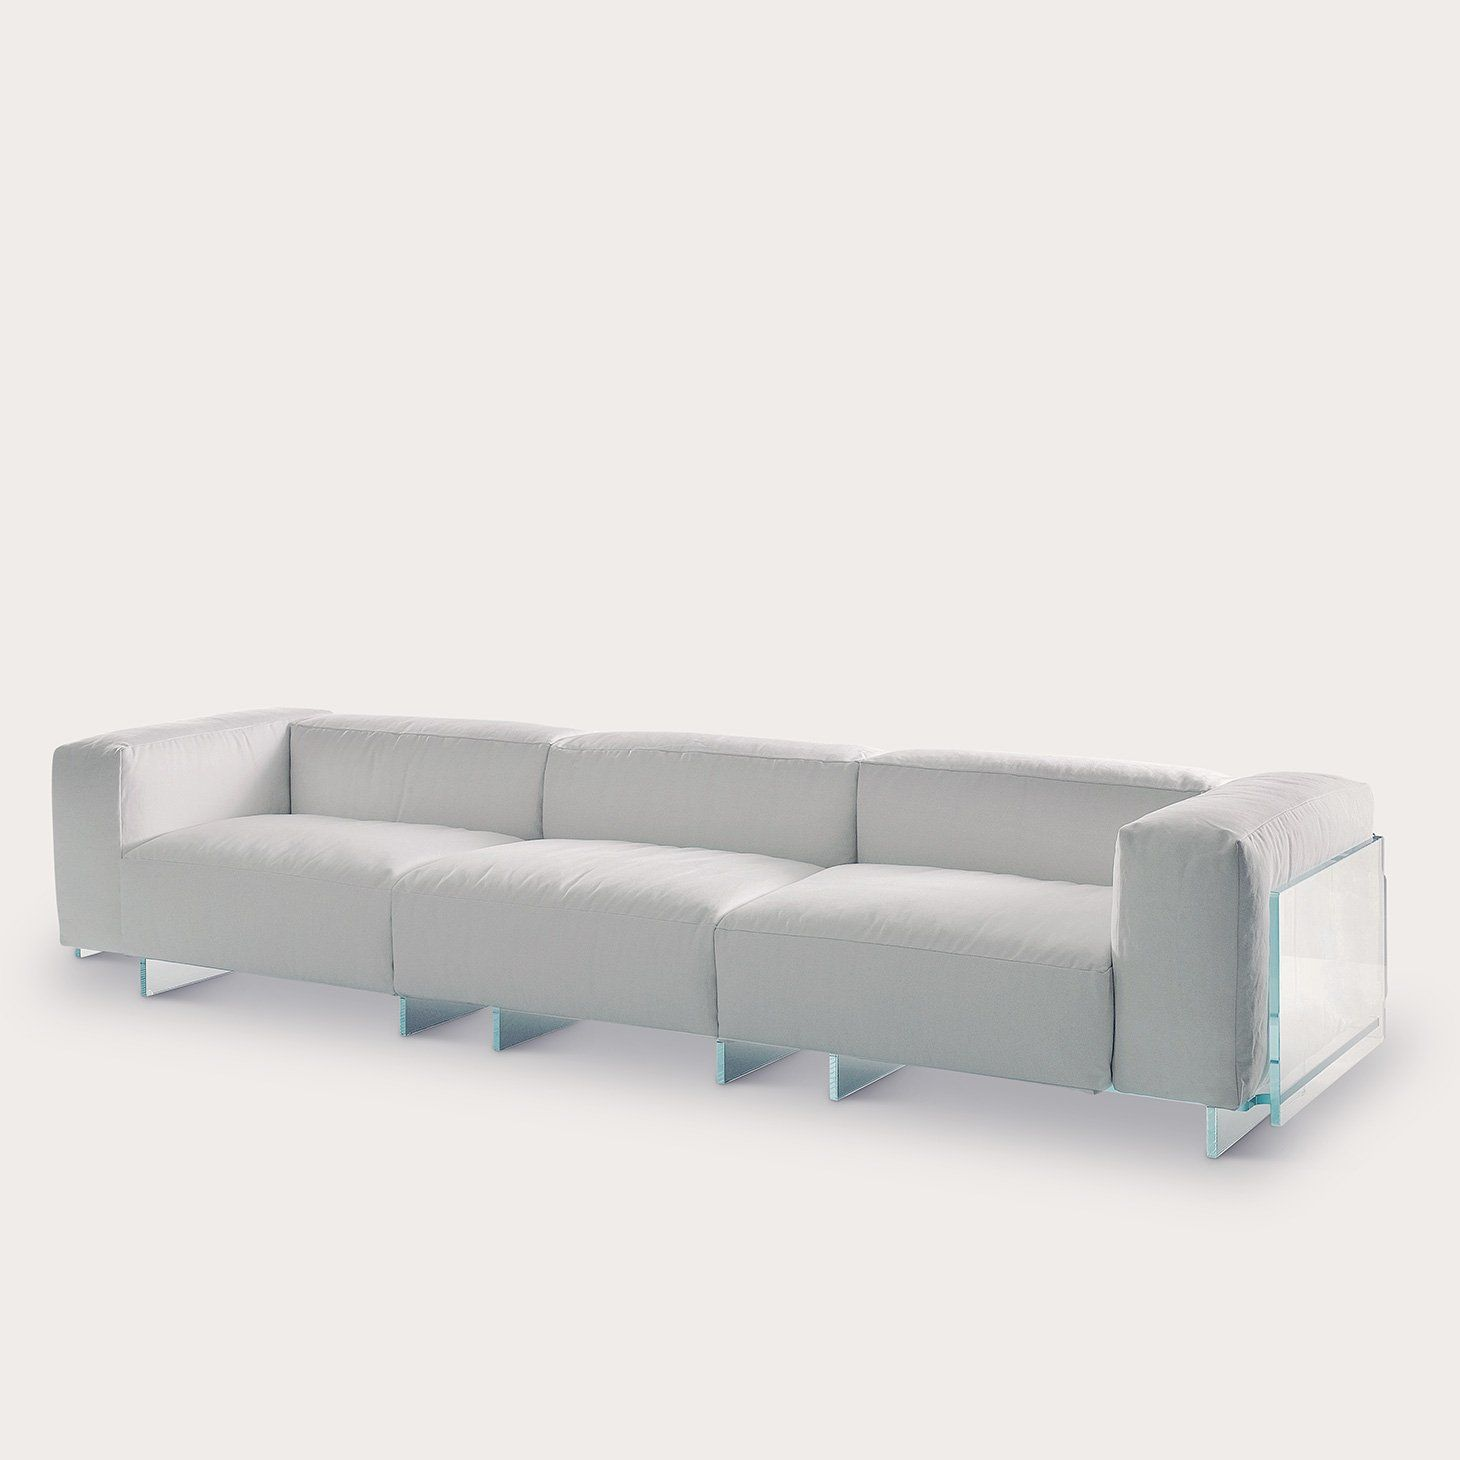 Crystal Lounge Sophisticated Furniture Contemporary Furniture Design Furniture Design